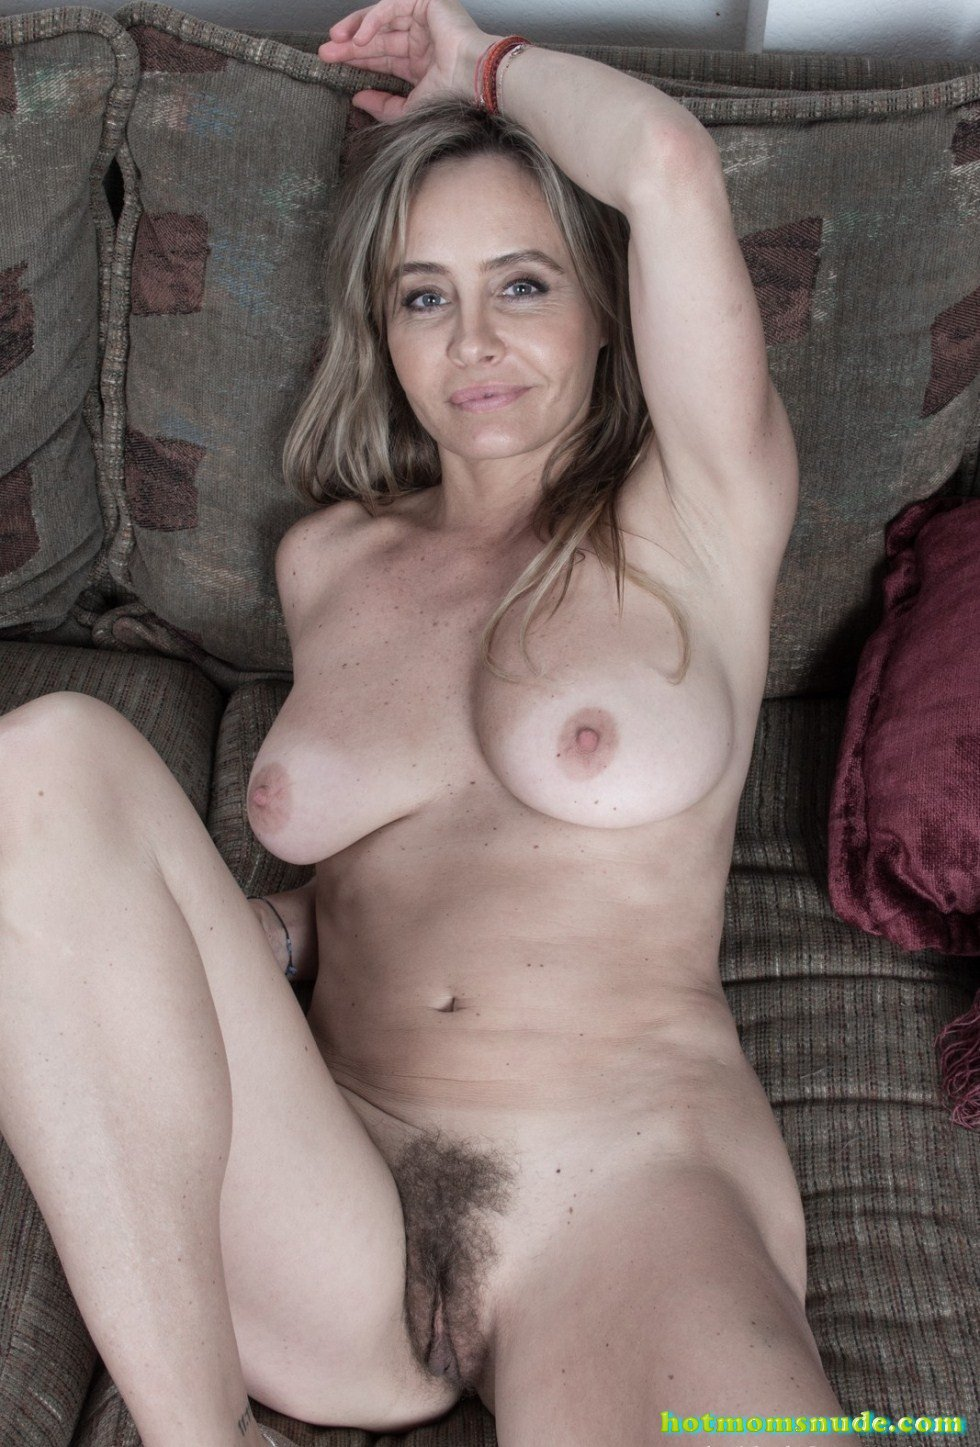 Sarah Michaels Nude Pics And Biography - Hot Moms Nude-5018